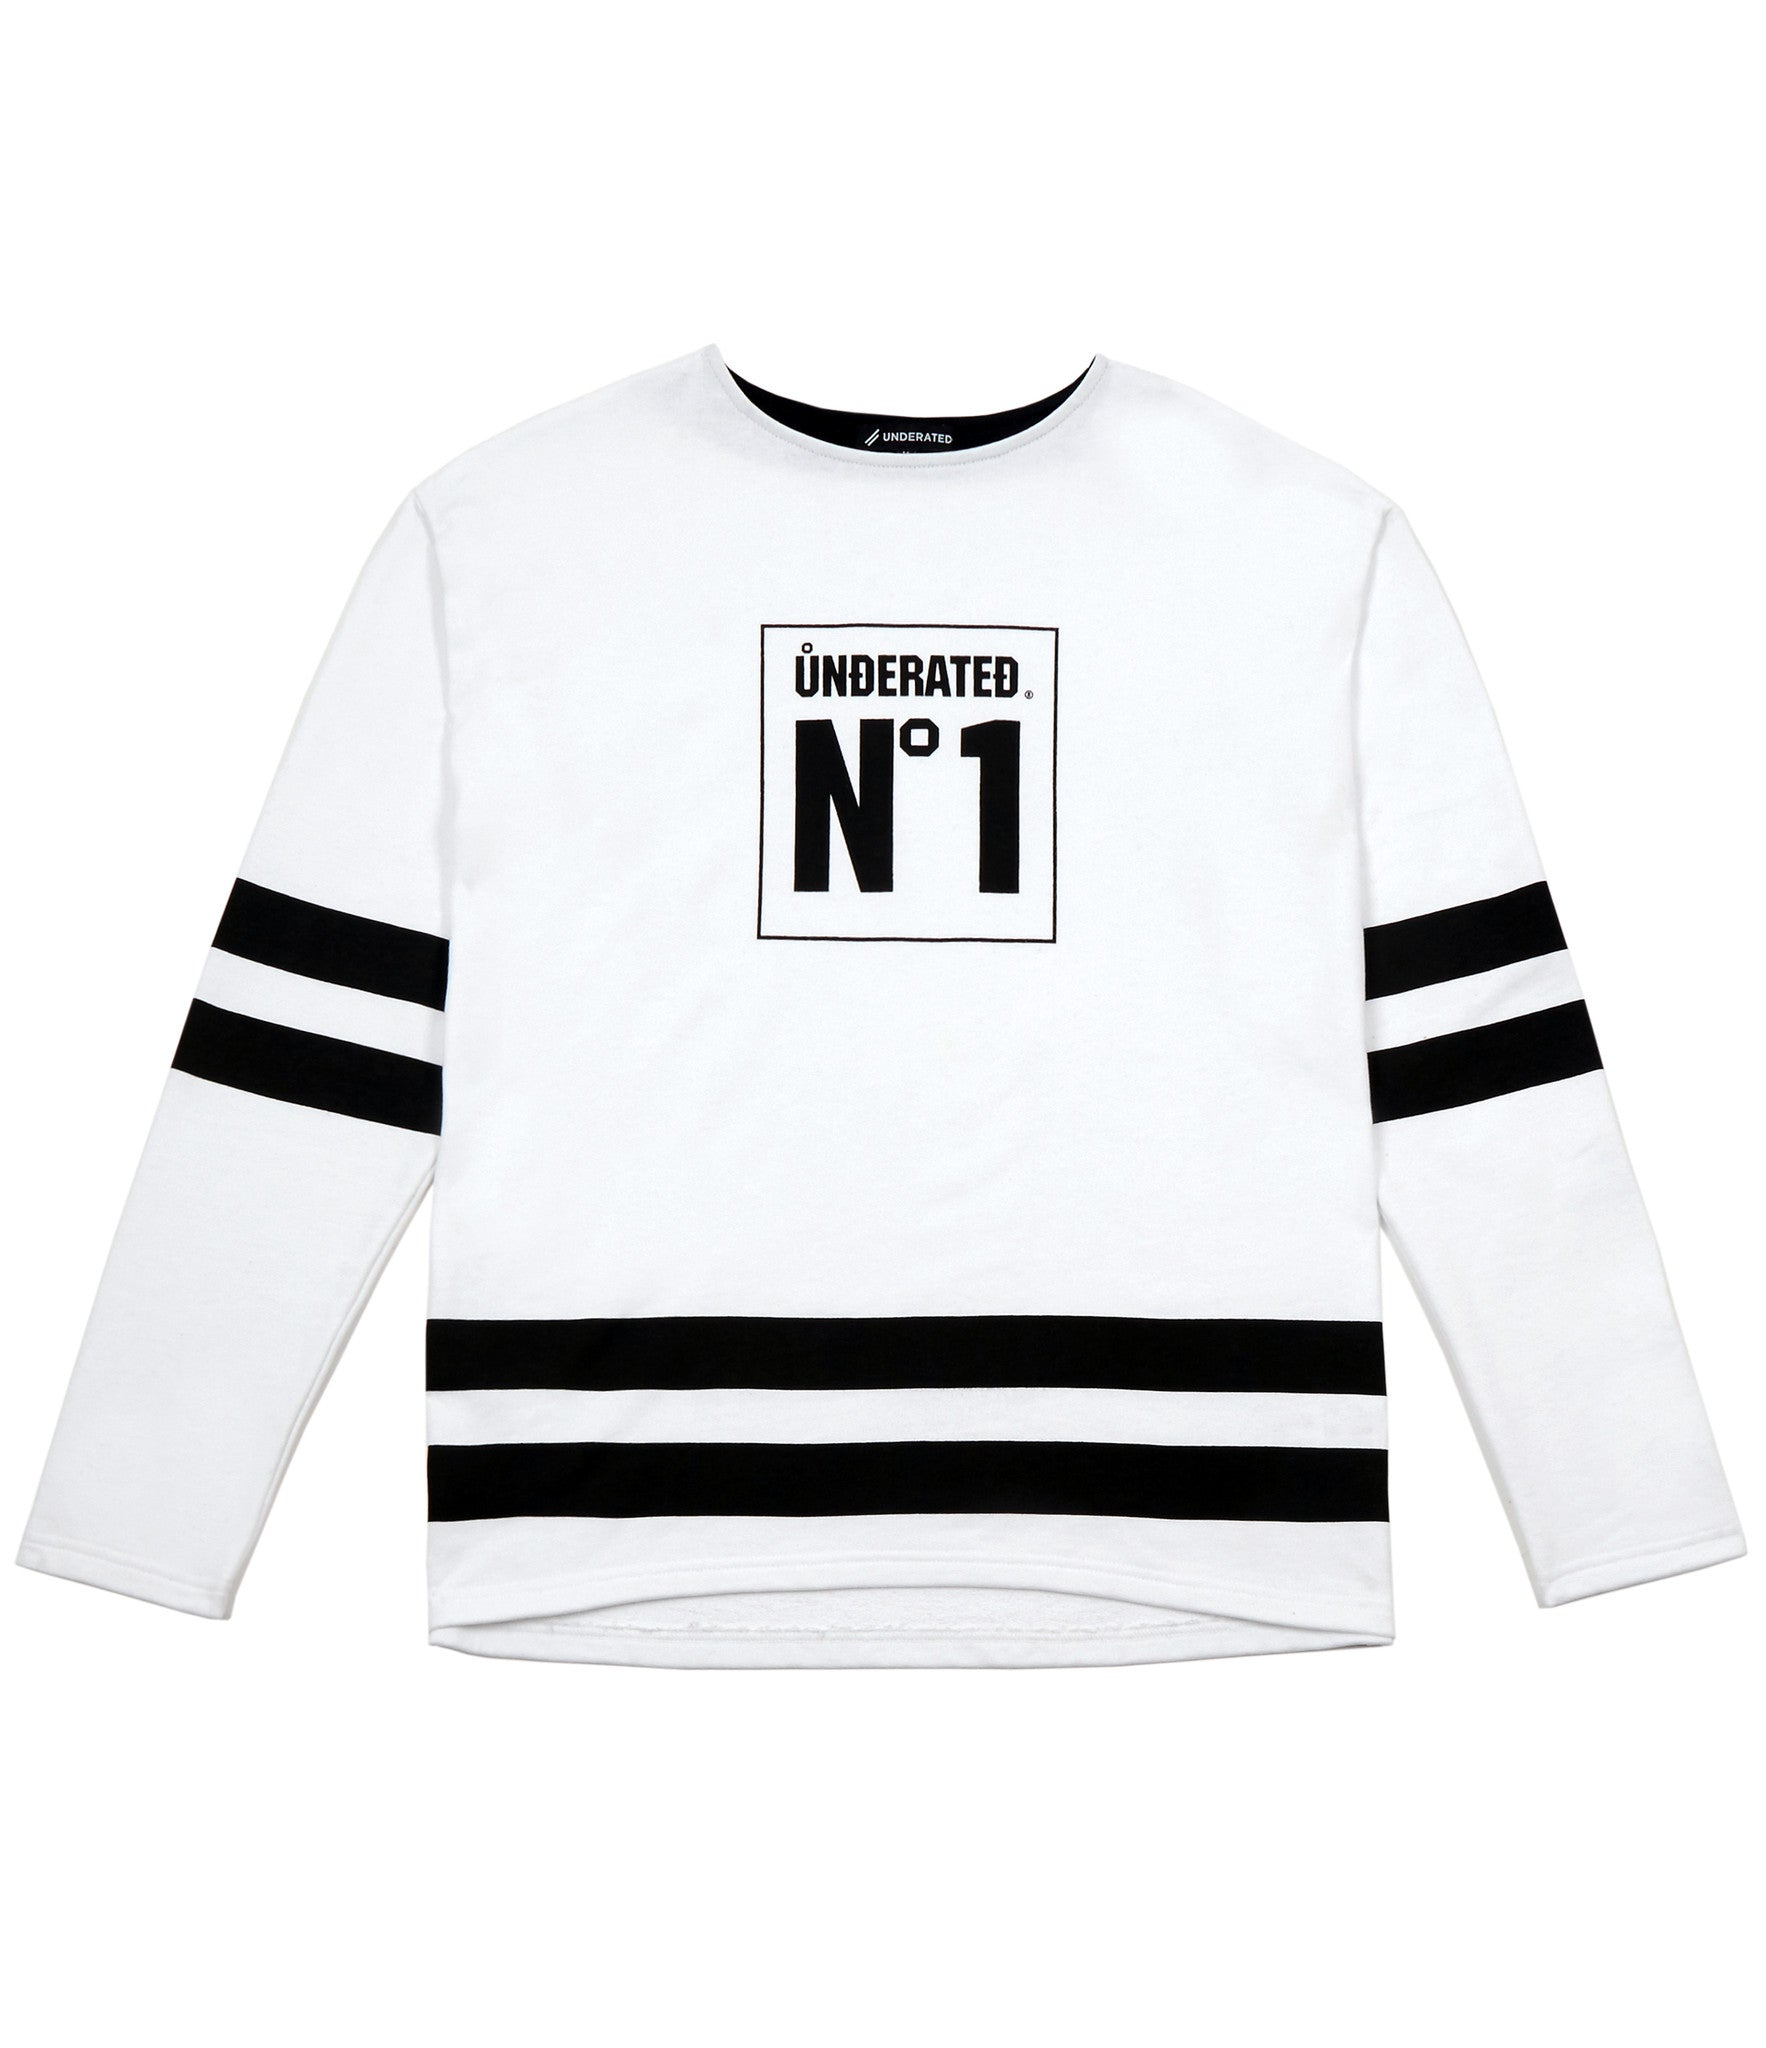 SW313 No.1 Printed Sweatshirt - White - underated london - underatedco - 1